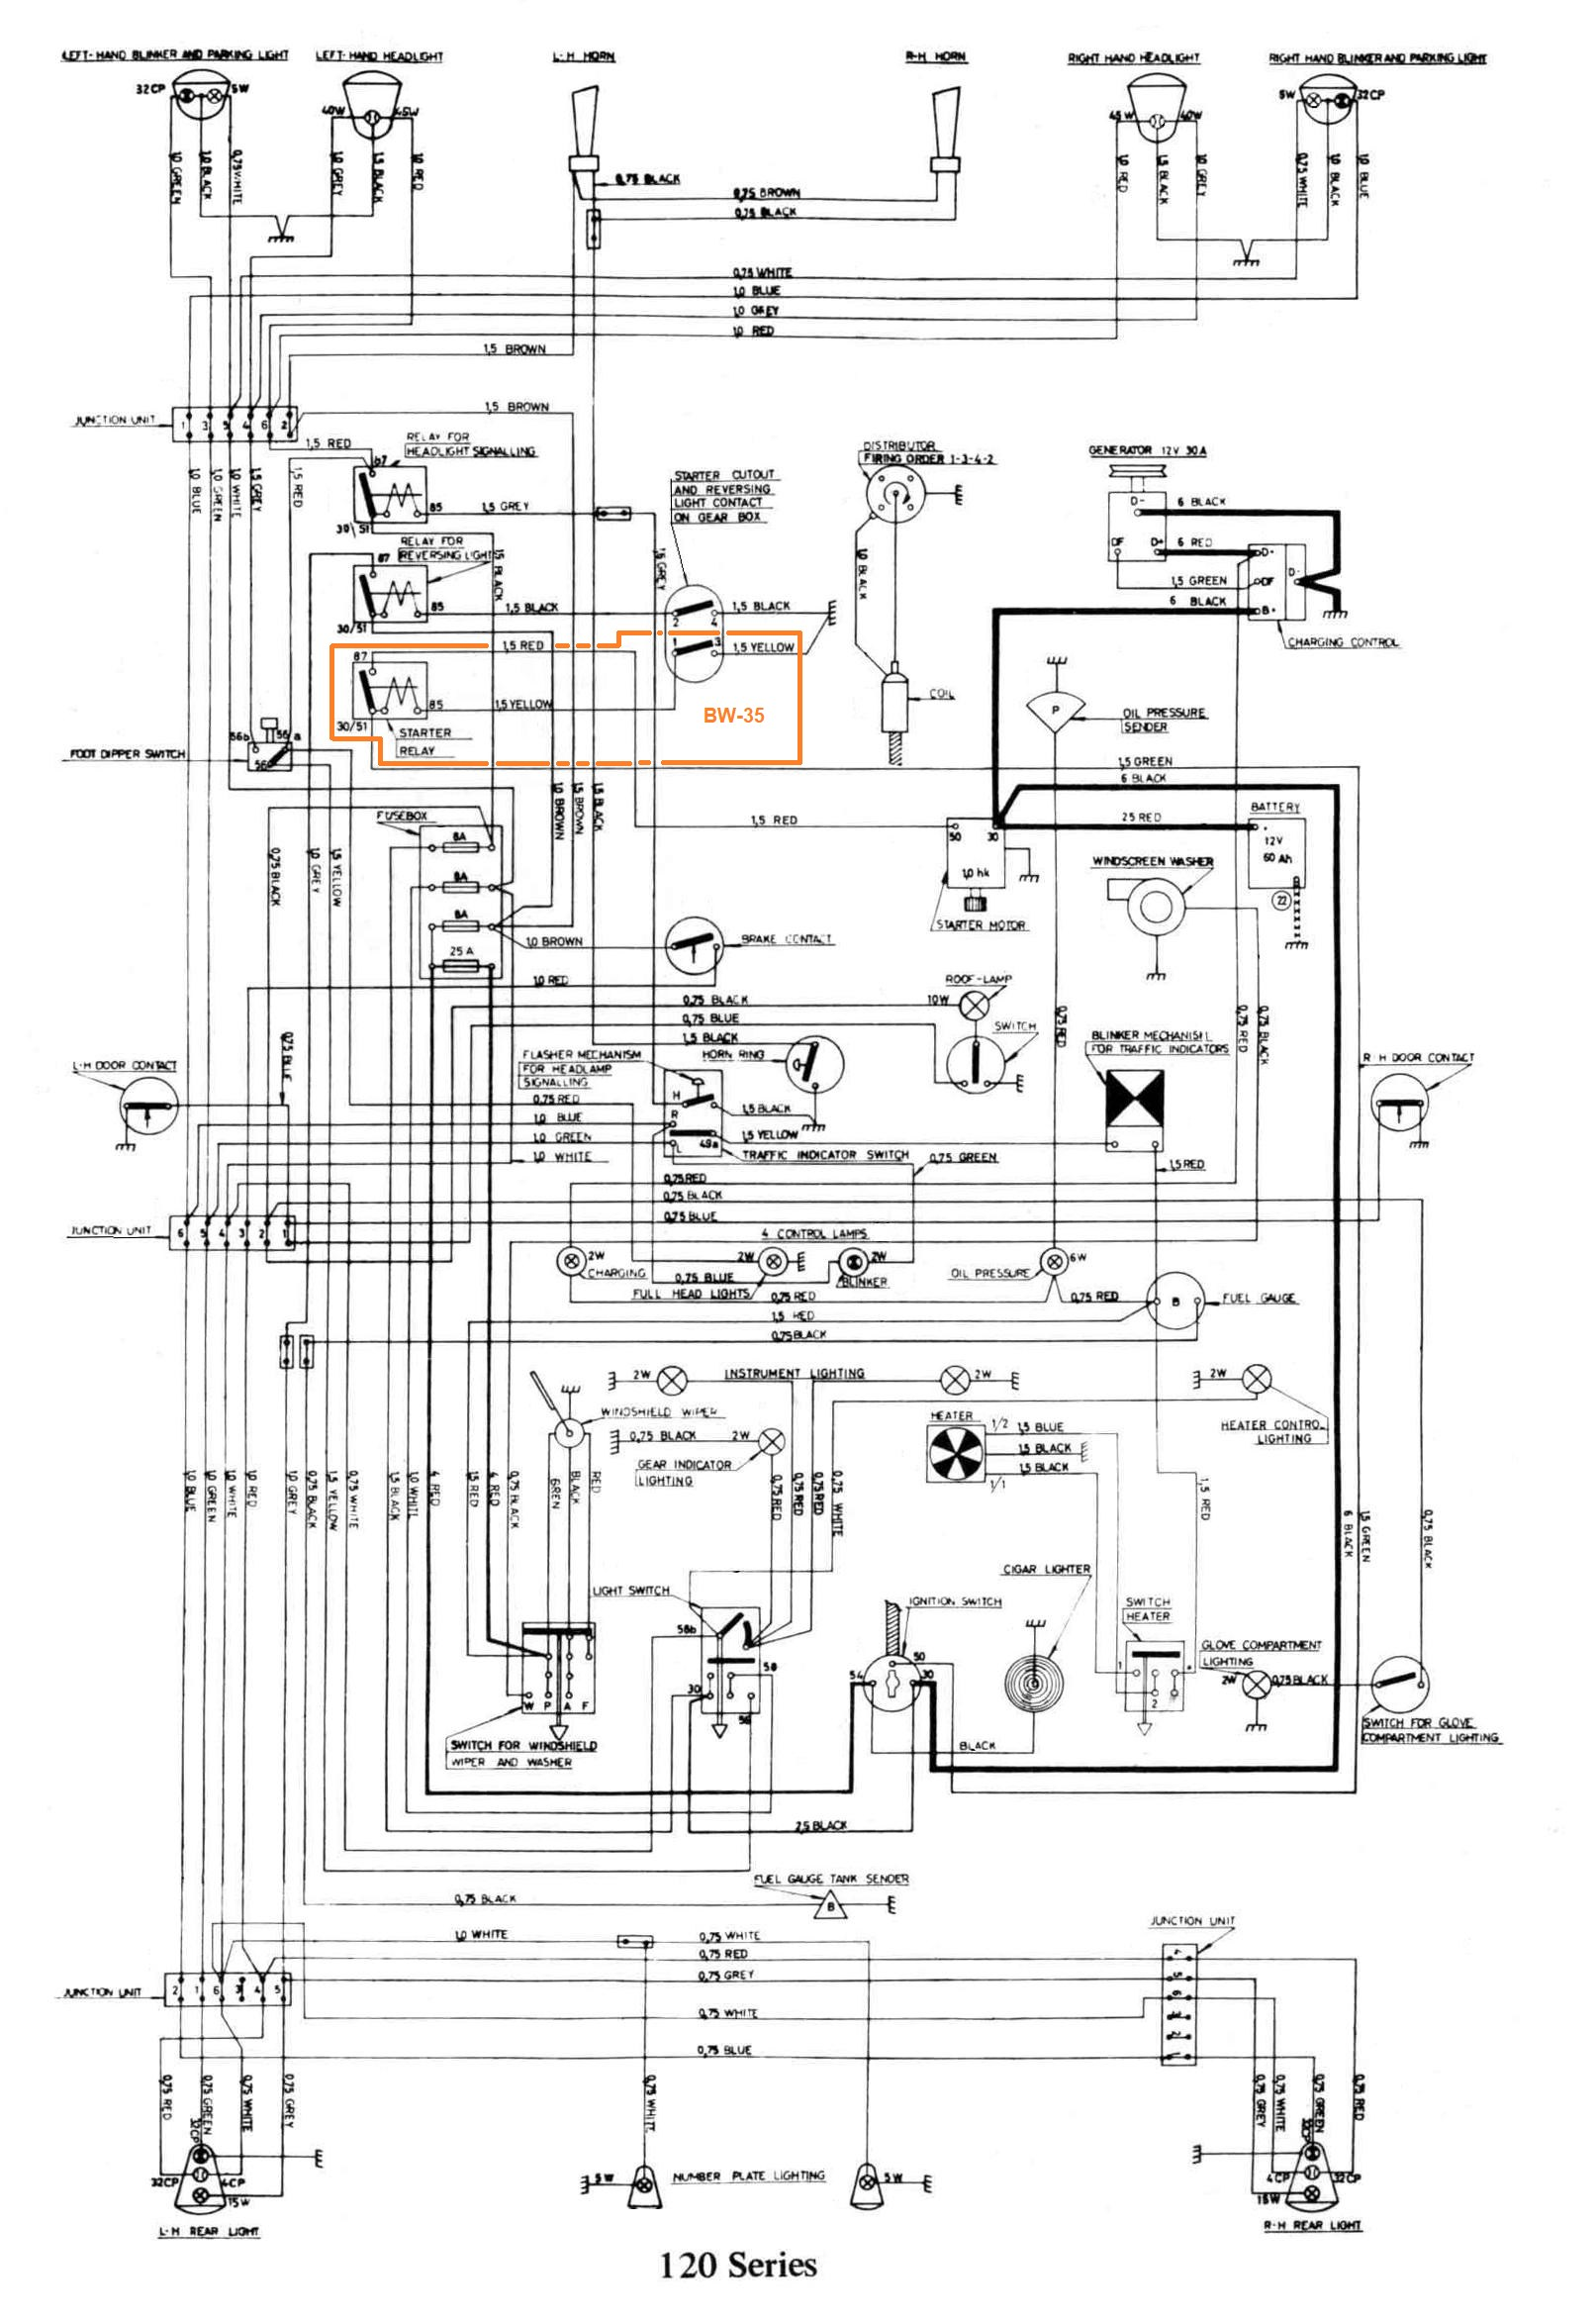 hight resolution of volvo amazon fuse box auto electrical wiring diagram rh psu edu co fr sanjaydutt me 2005